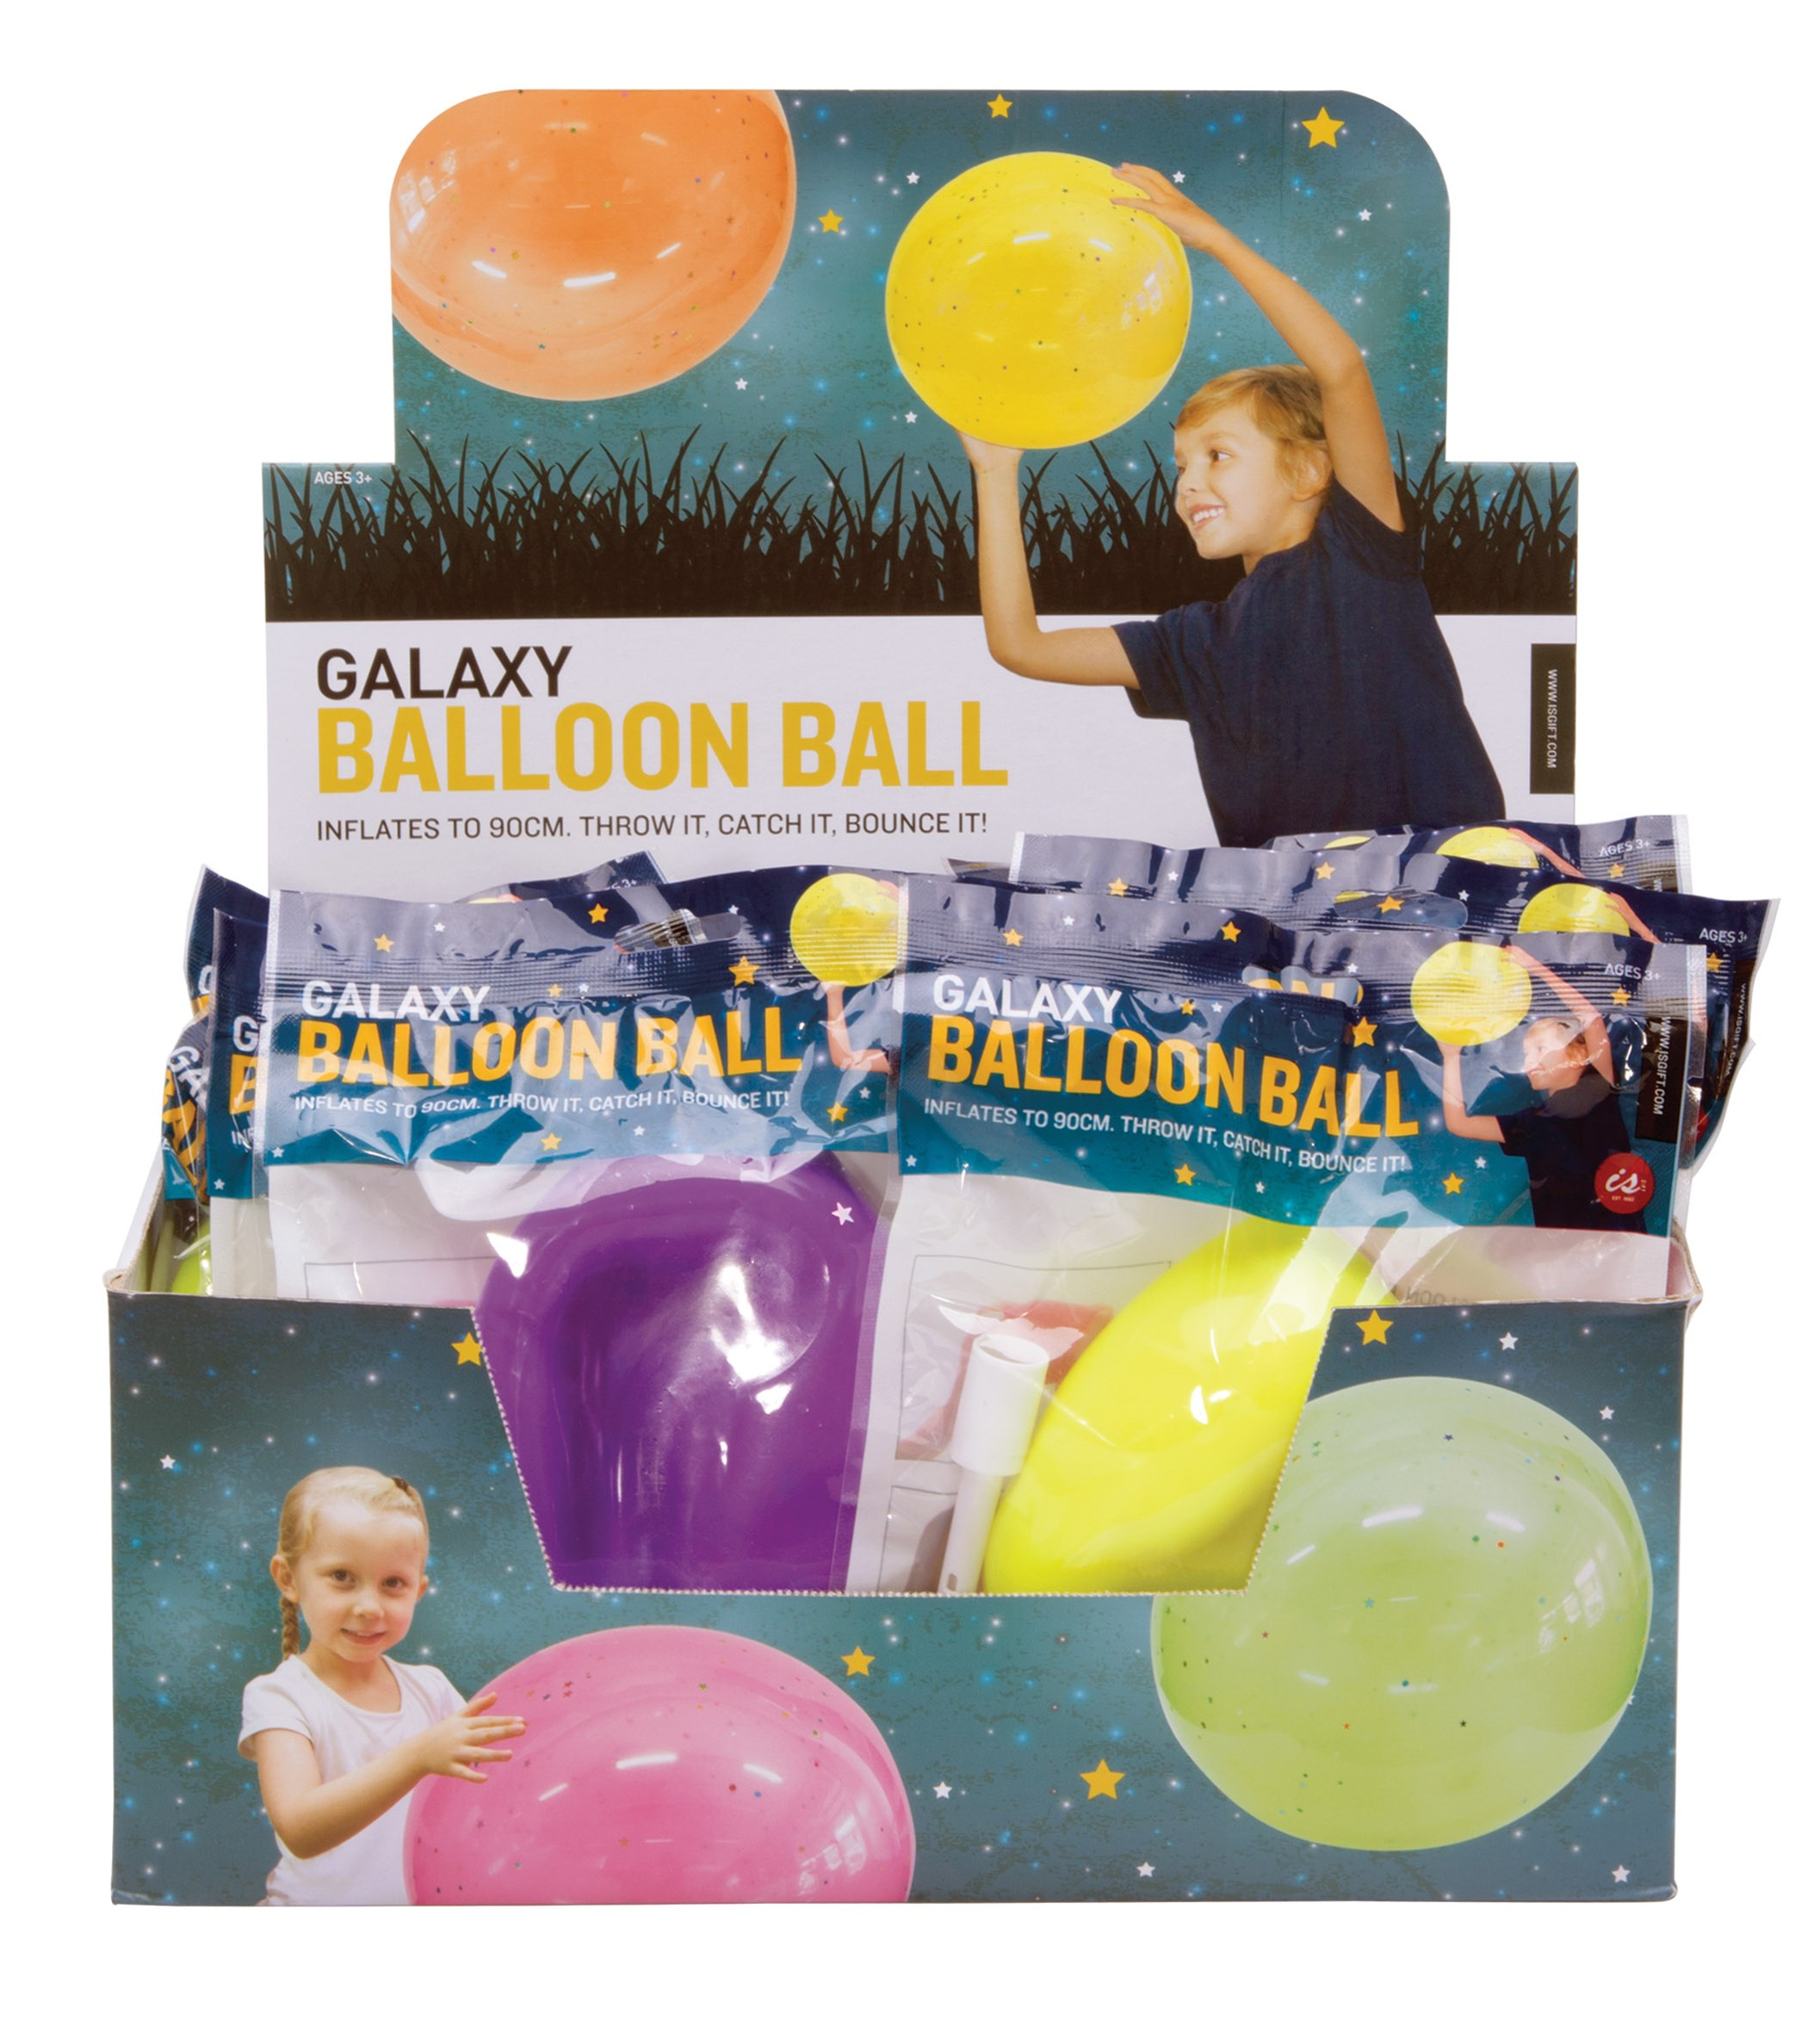 Galaxy Balloon Ball